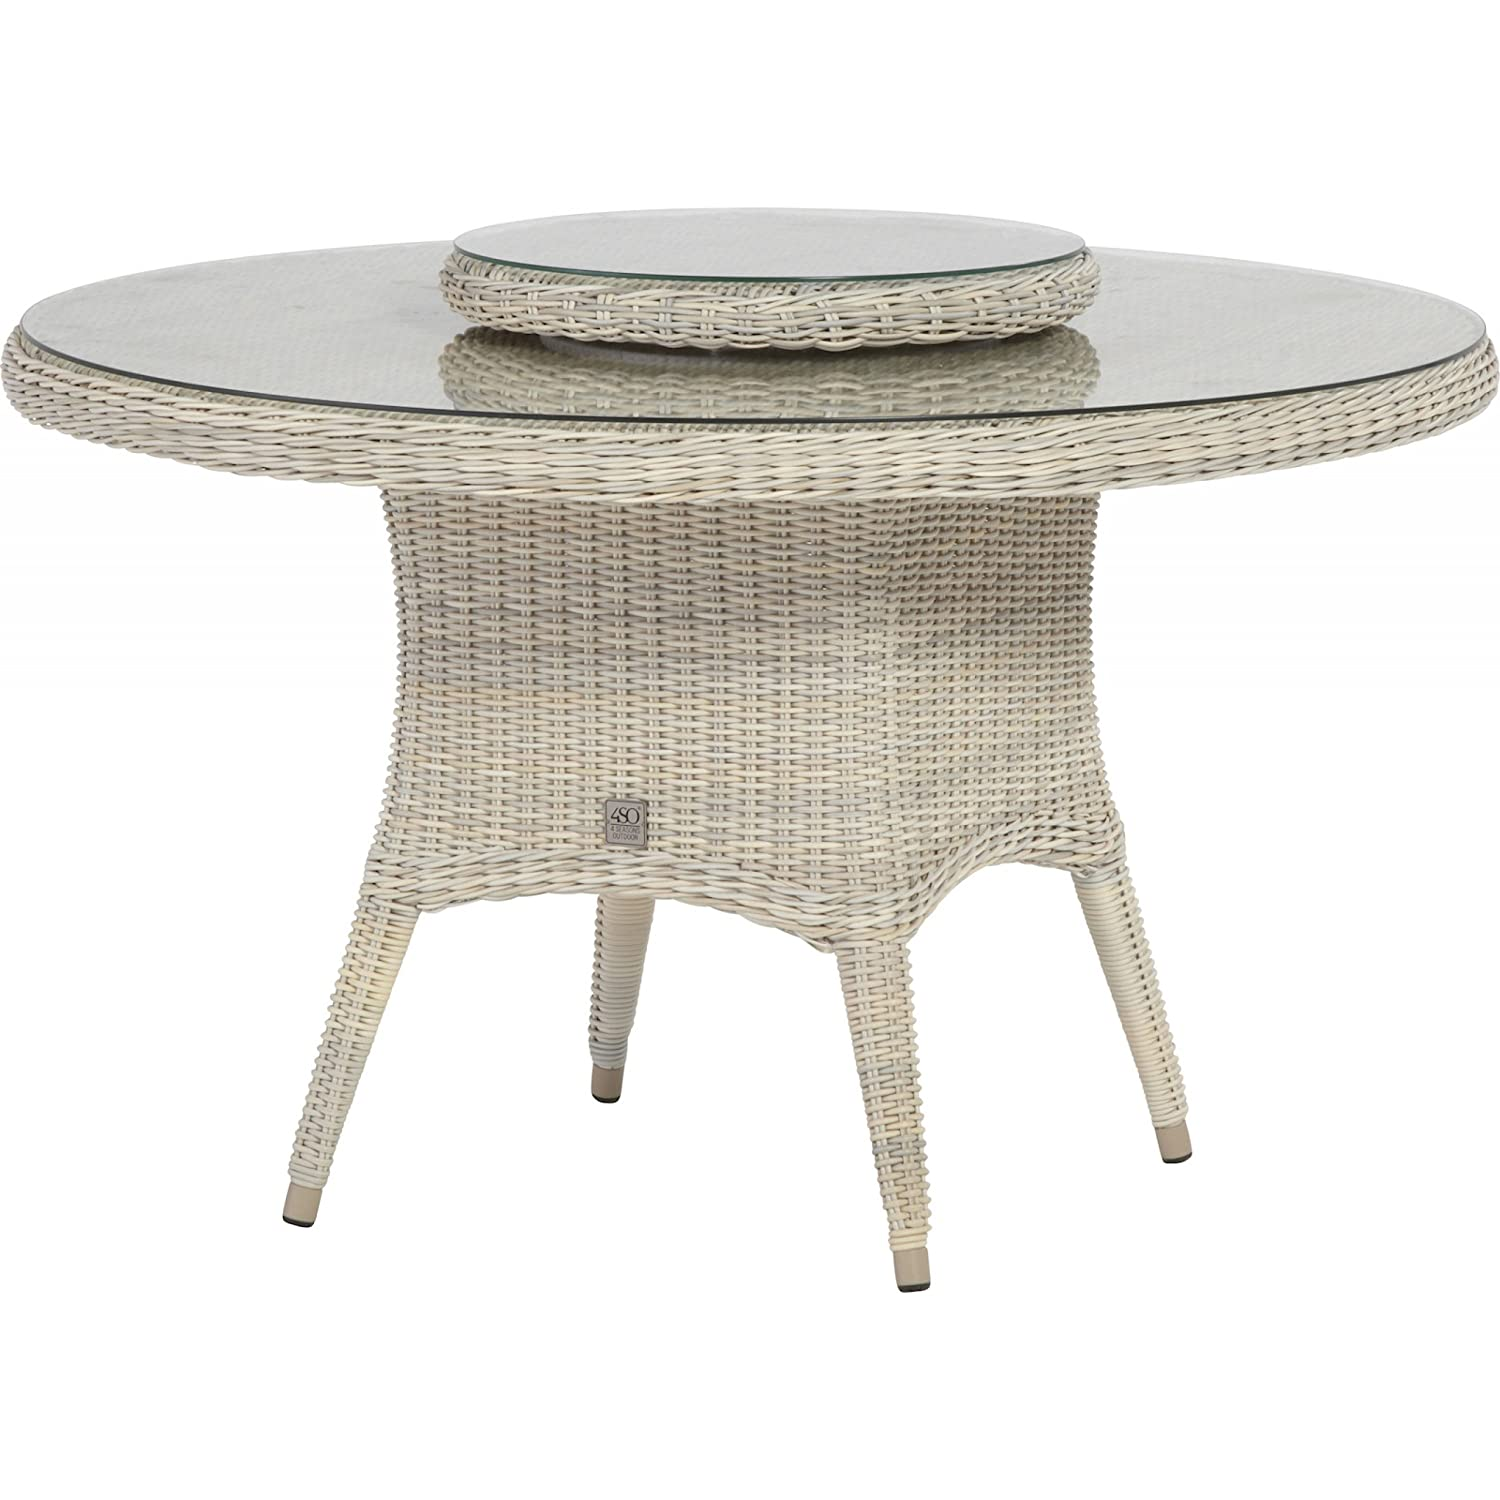 4Seasons Outdoor Victoria dining Tisch ø 130 cm inkl. Glasplatte Provance wicker kaufen